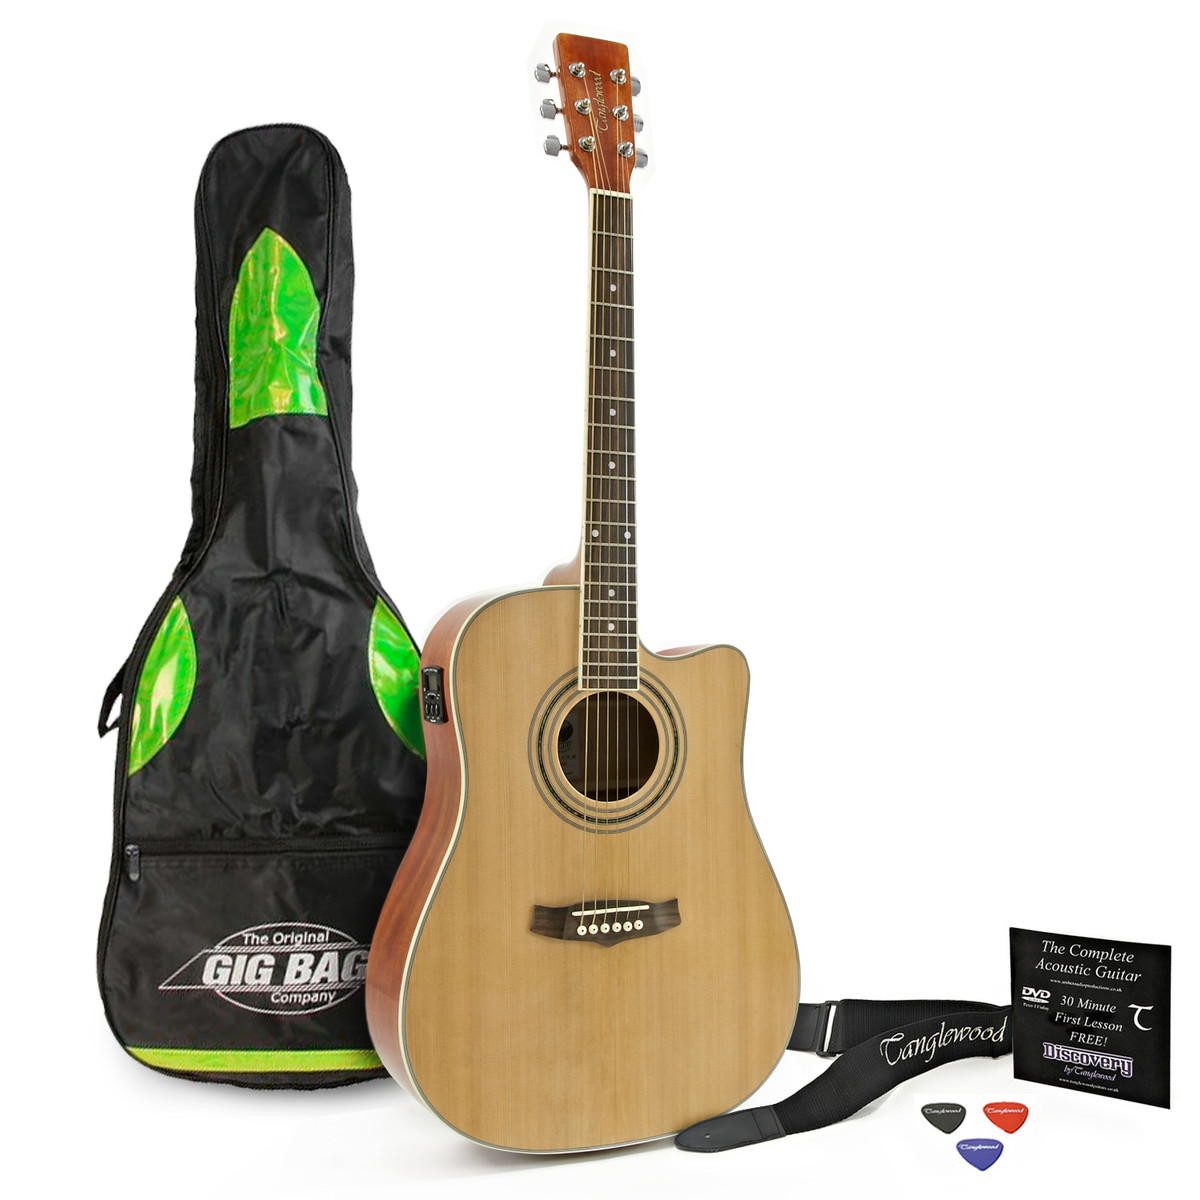 Disc tanglewood dbt g4m ce electro acoustic guitar for The tanglewood